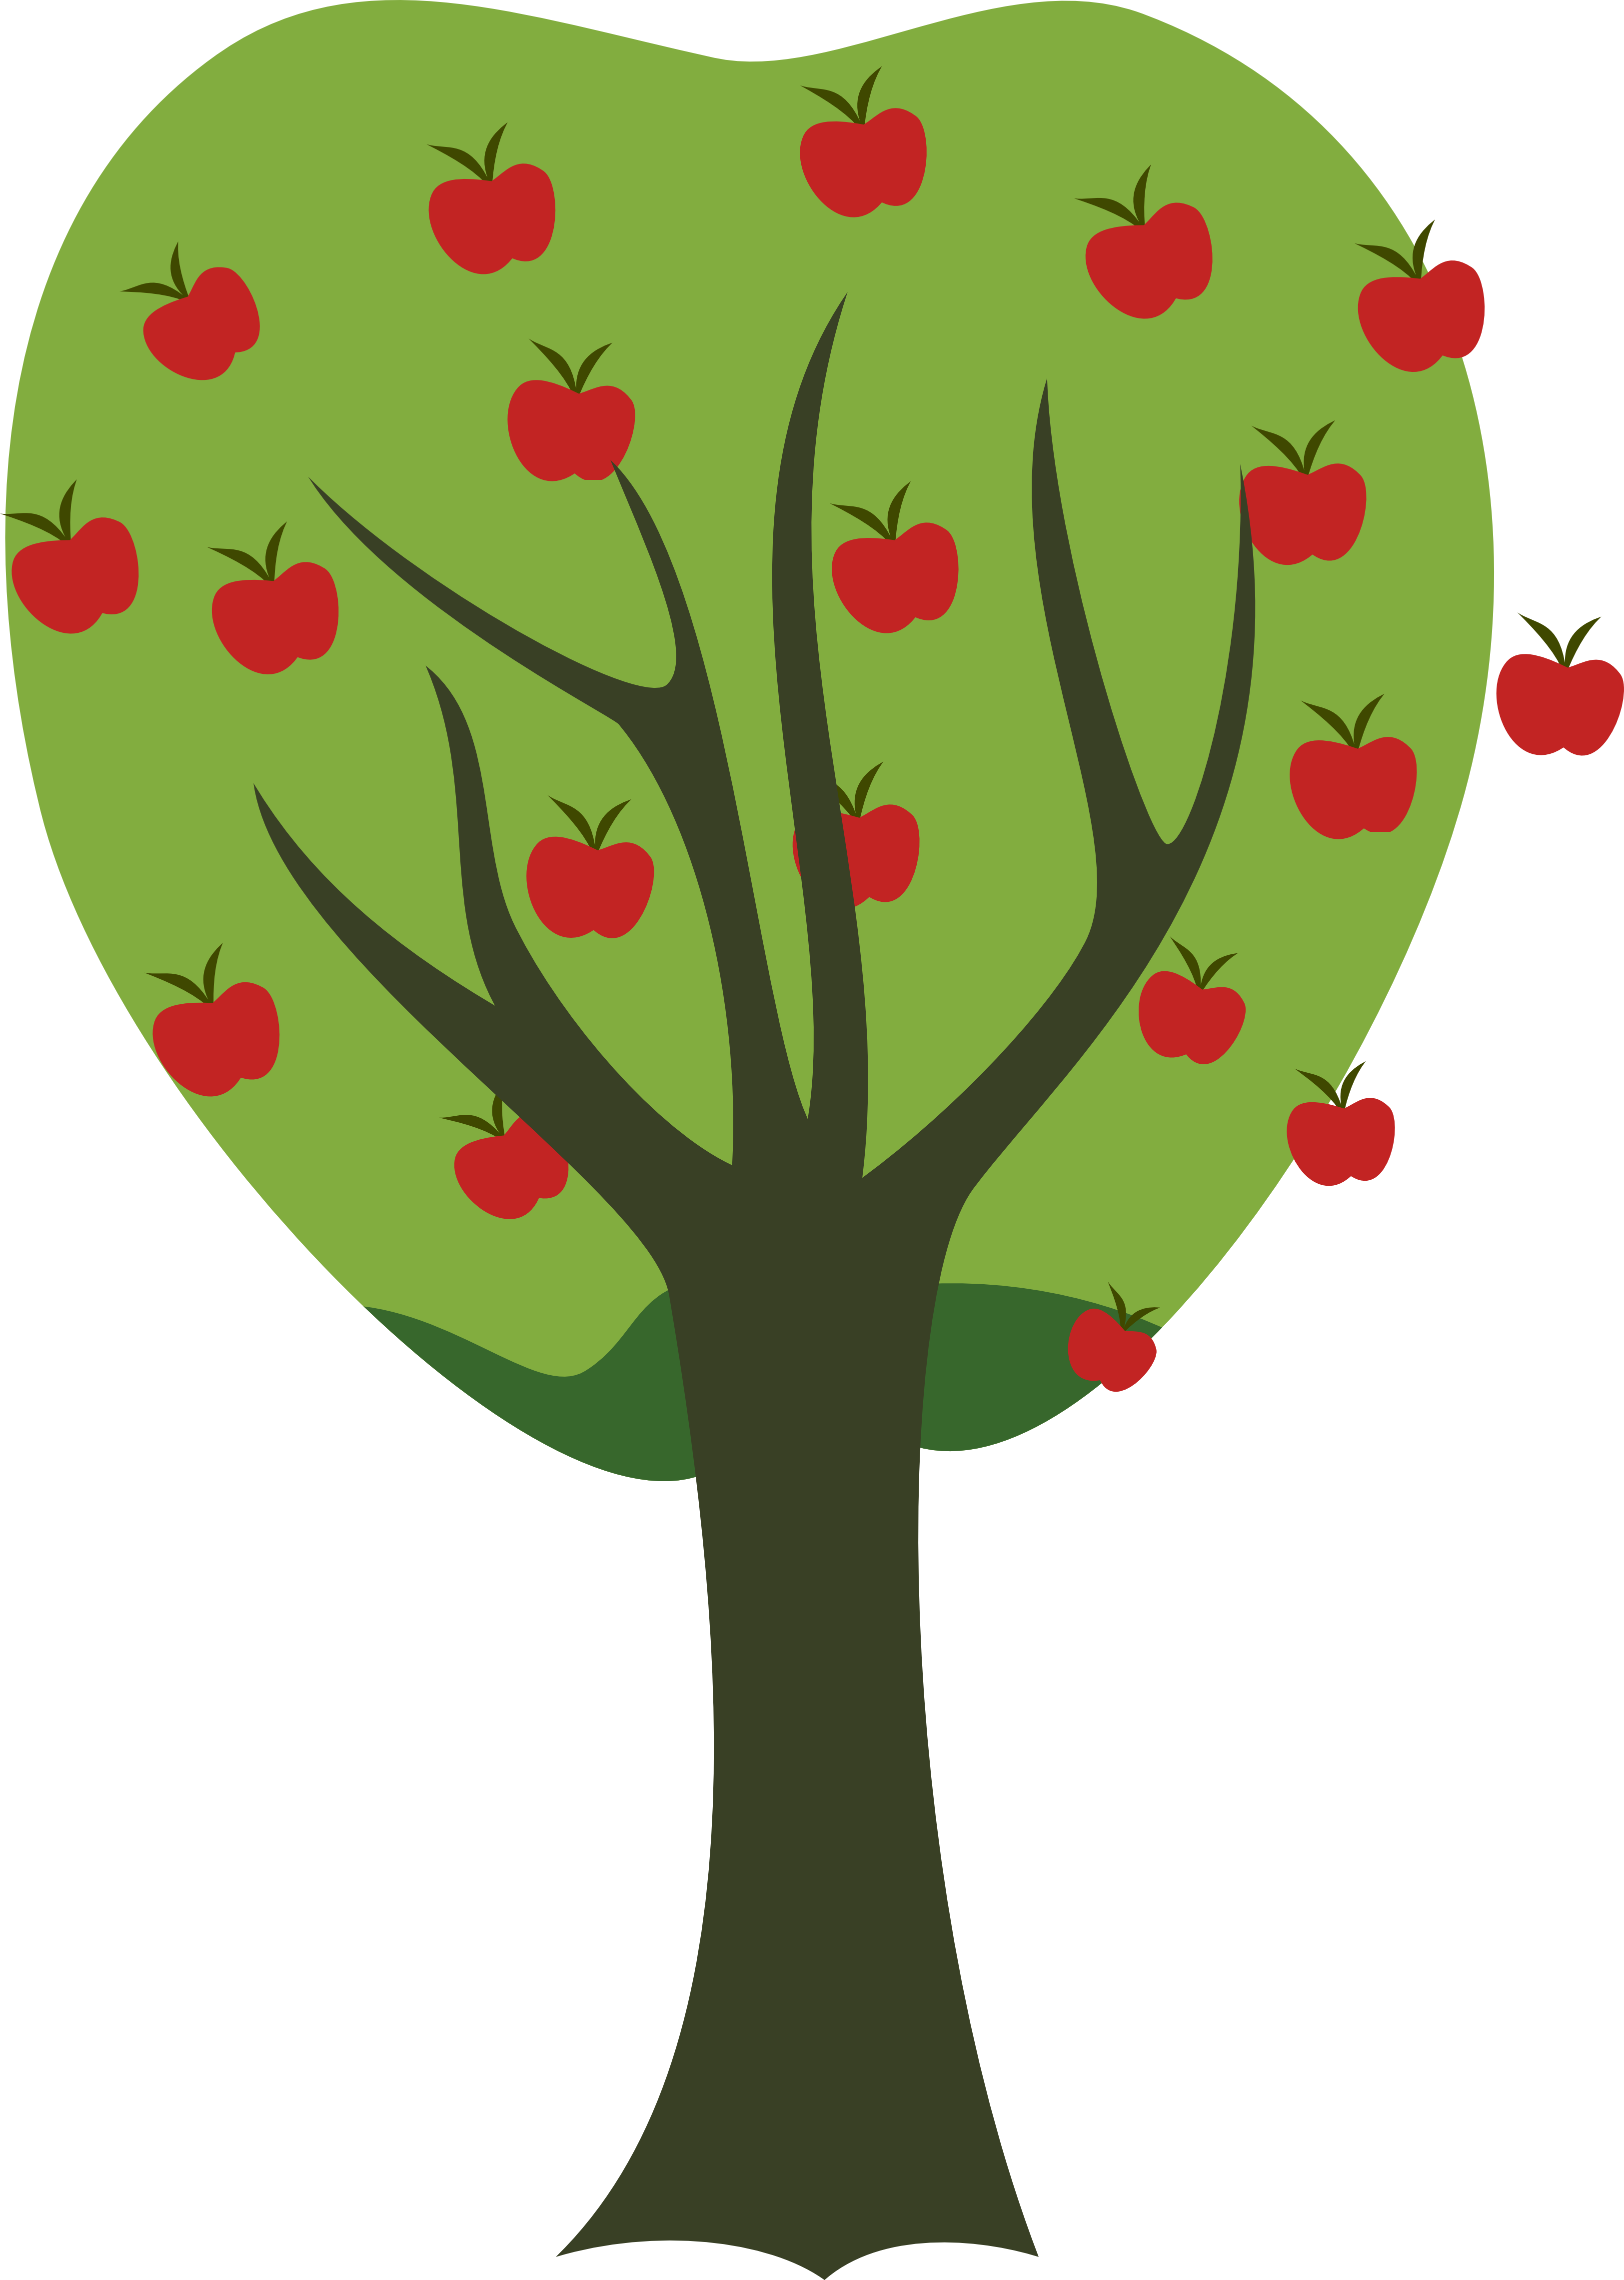 Apple tree clipart transparent background svg royalty free Apple Tree Clipart Transparent | Letters Format svg royalty free